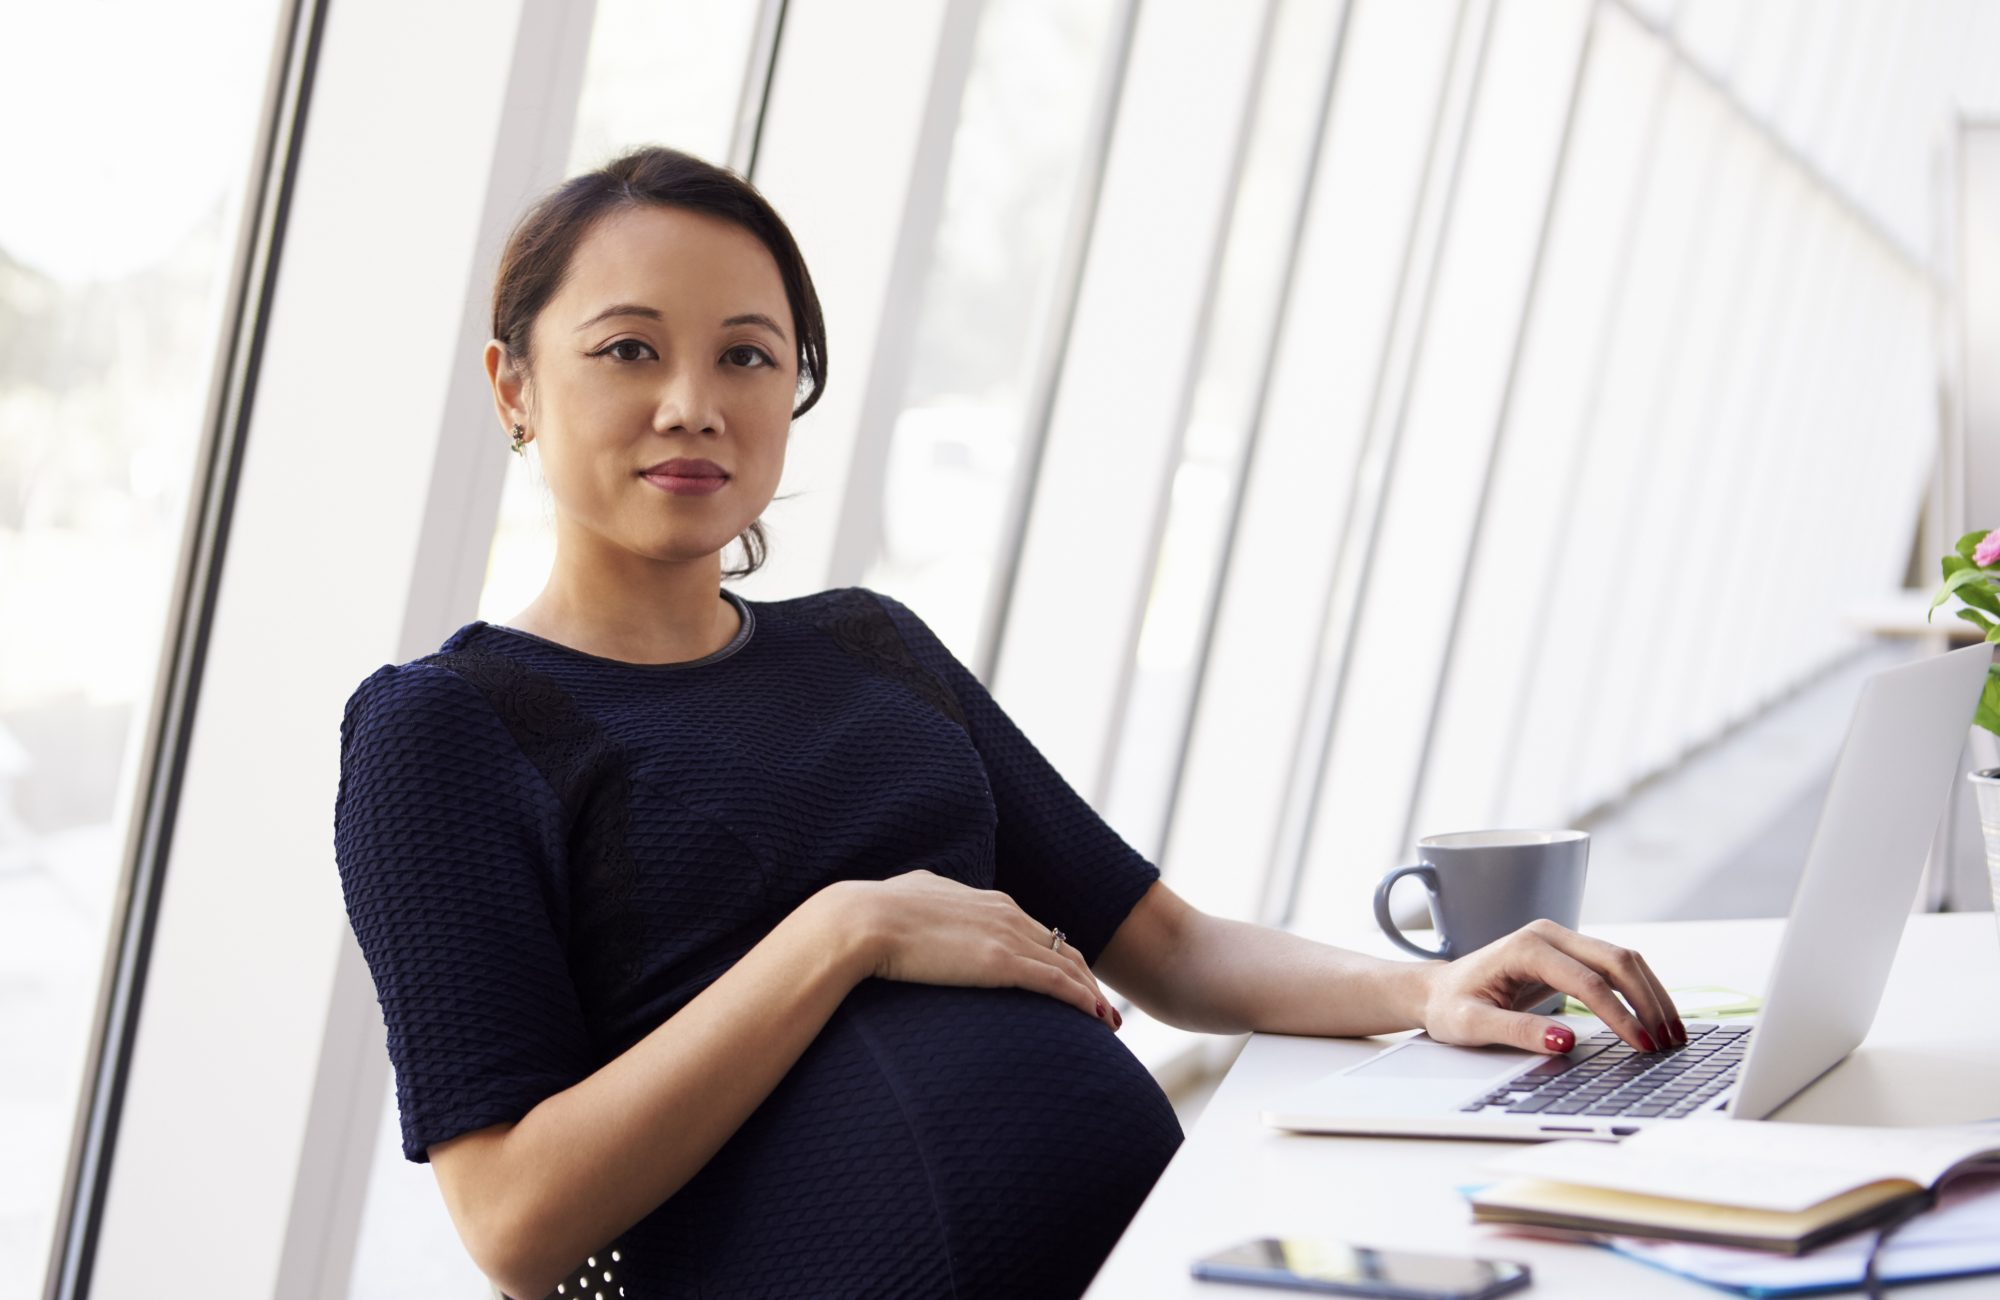 Portrait Of Pregnant Businesswoman Using Laptop In Office